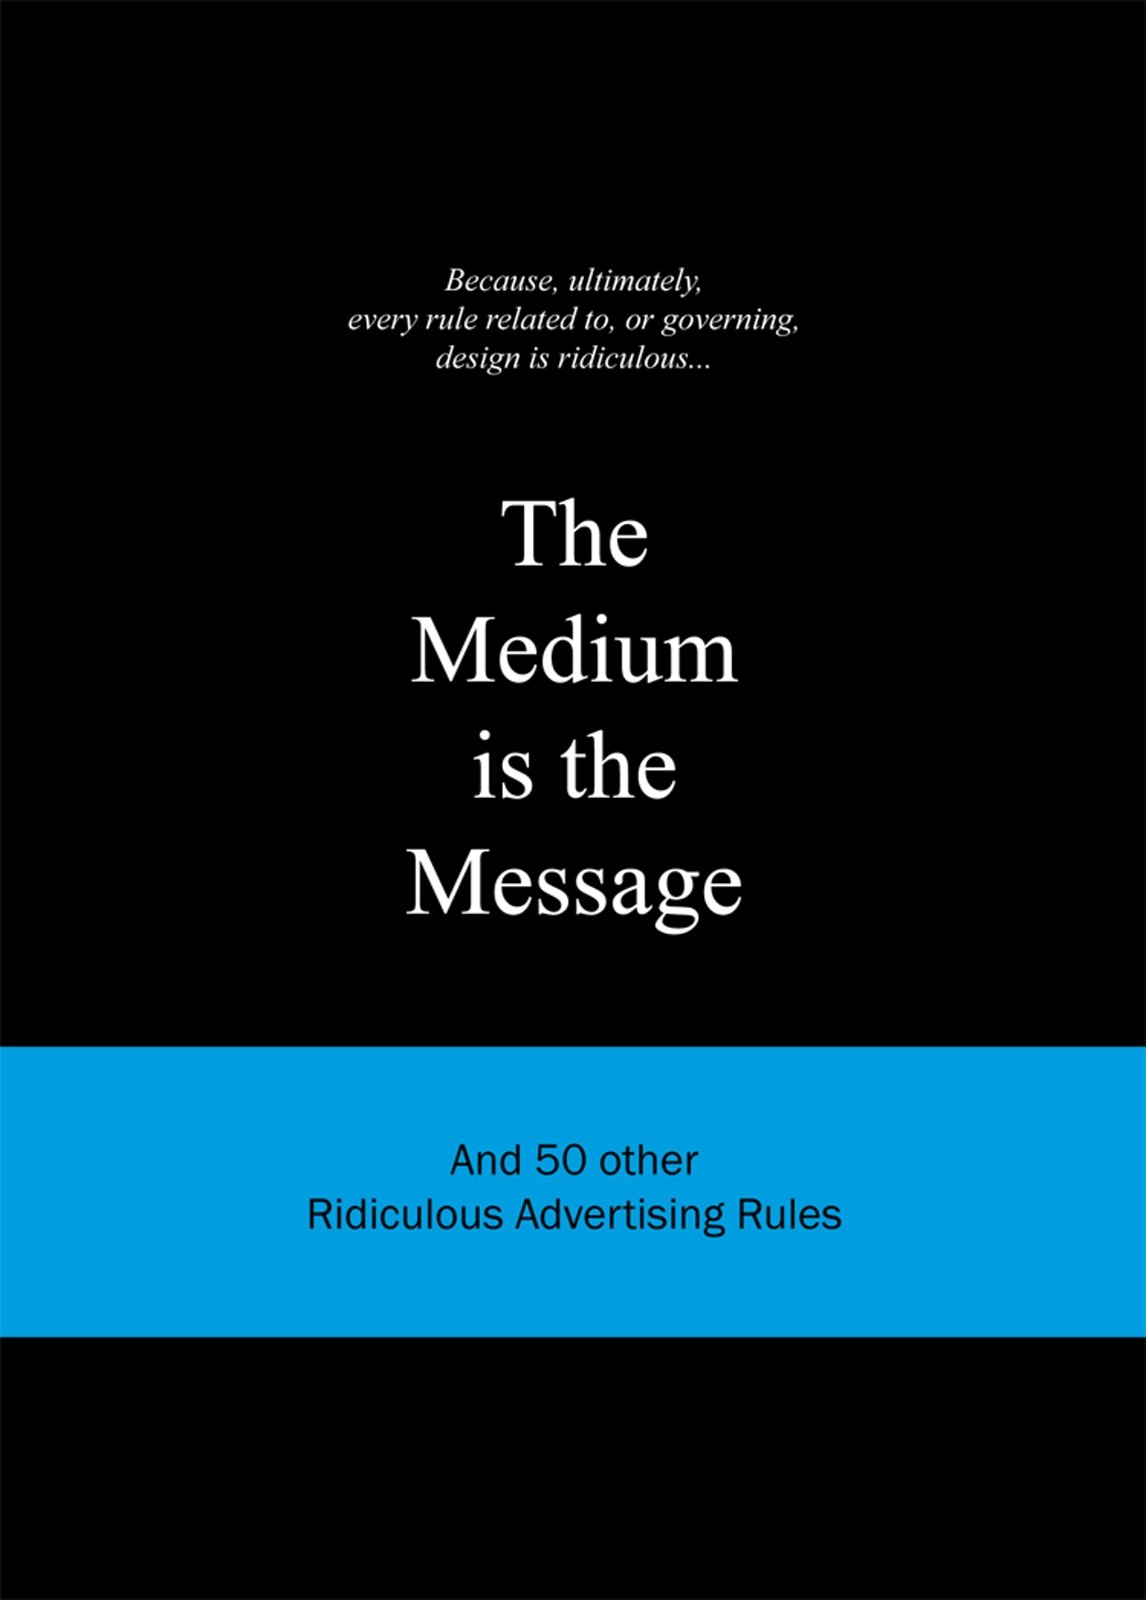 the-medium-is-the-message-and-50-other-ridiculous-advertising-rules-ridiculous-design-rules